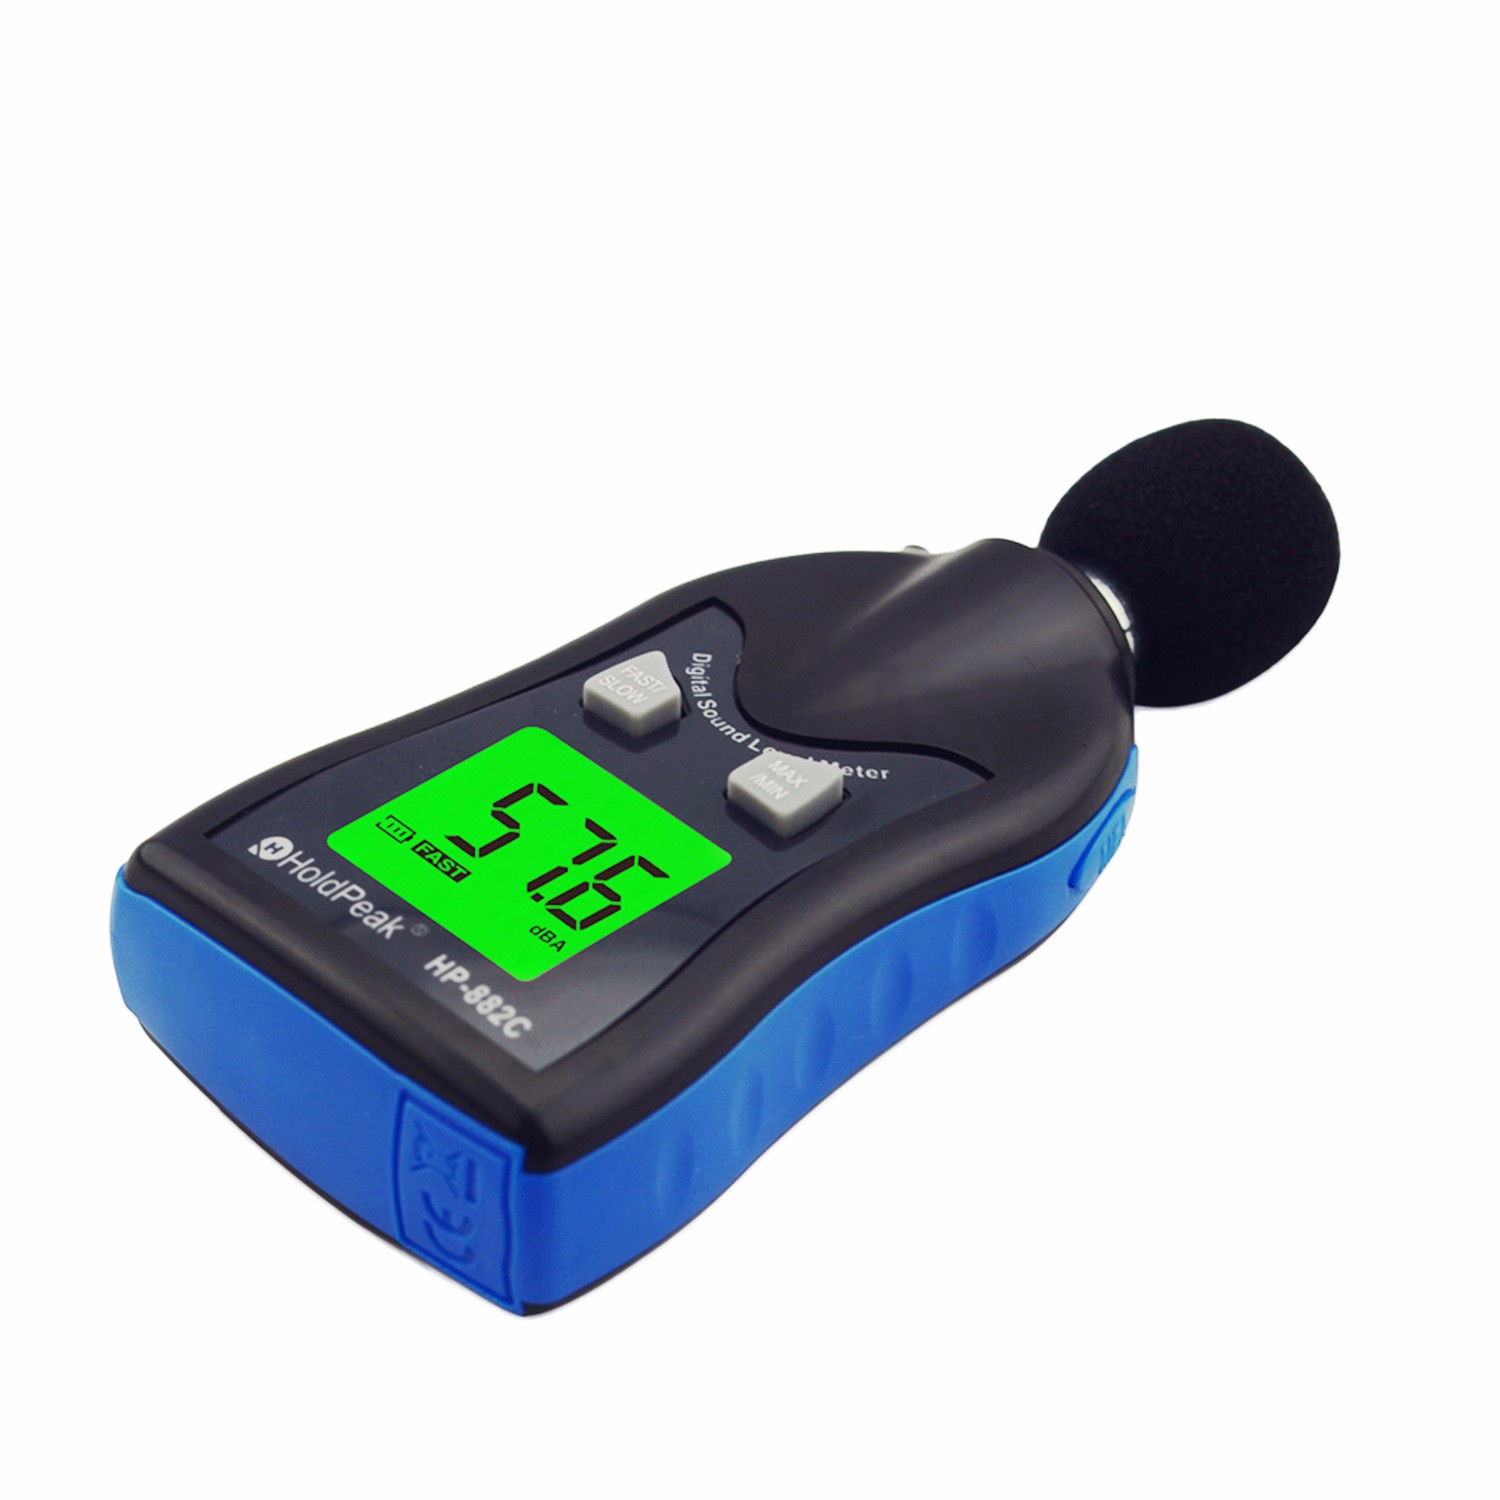 HoldPeak measurement measure sound level for business for measuring steady state noise-4